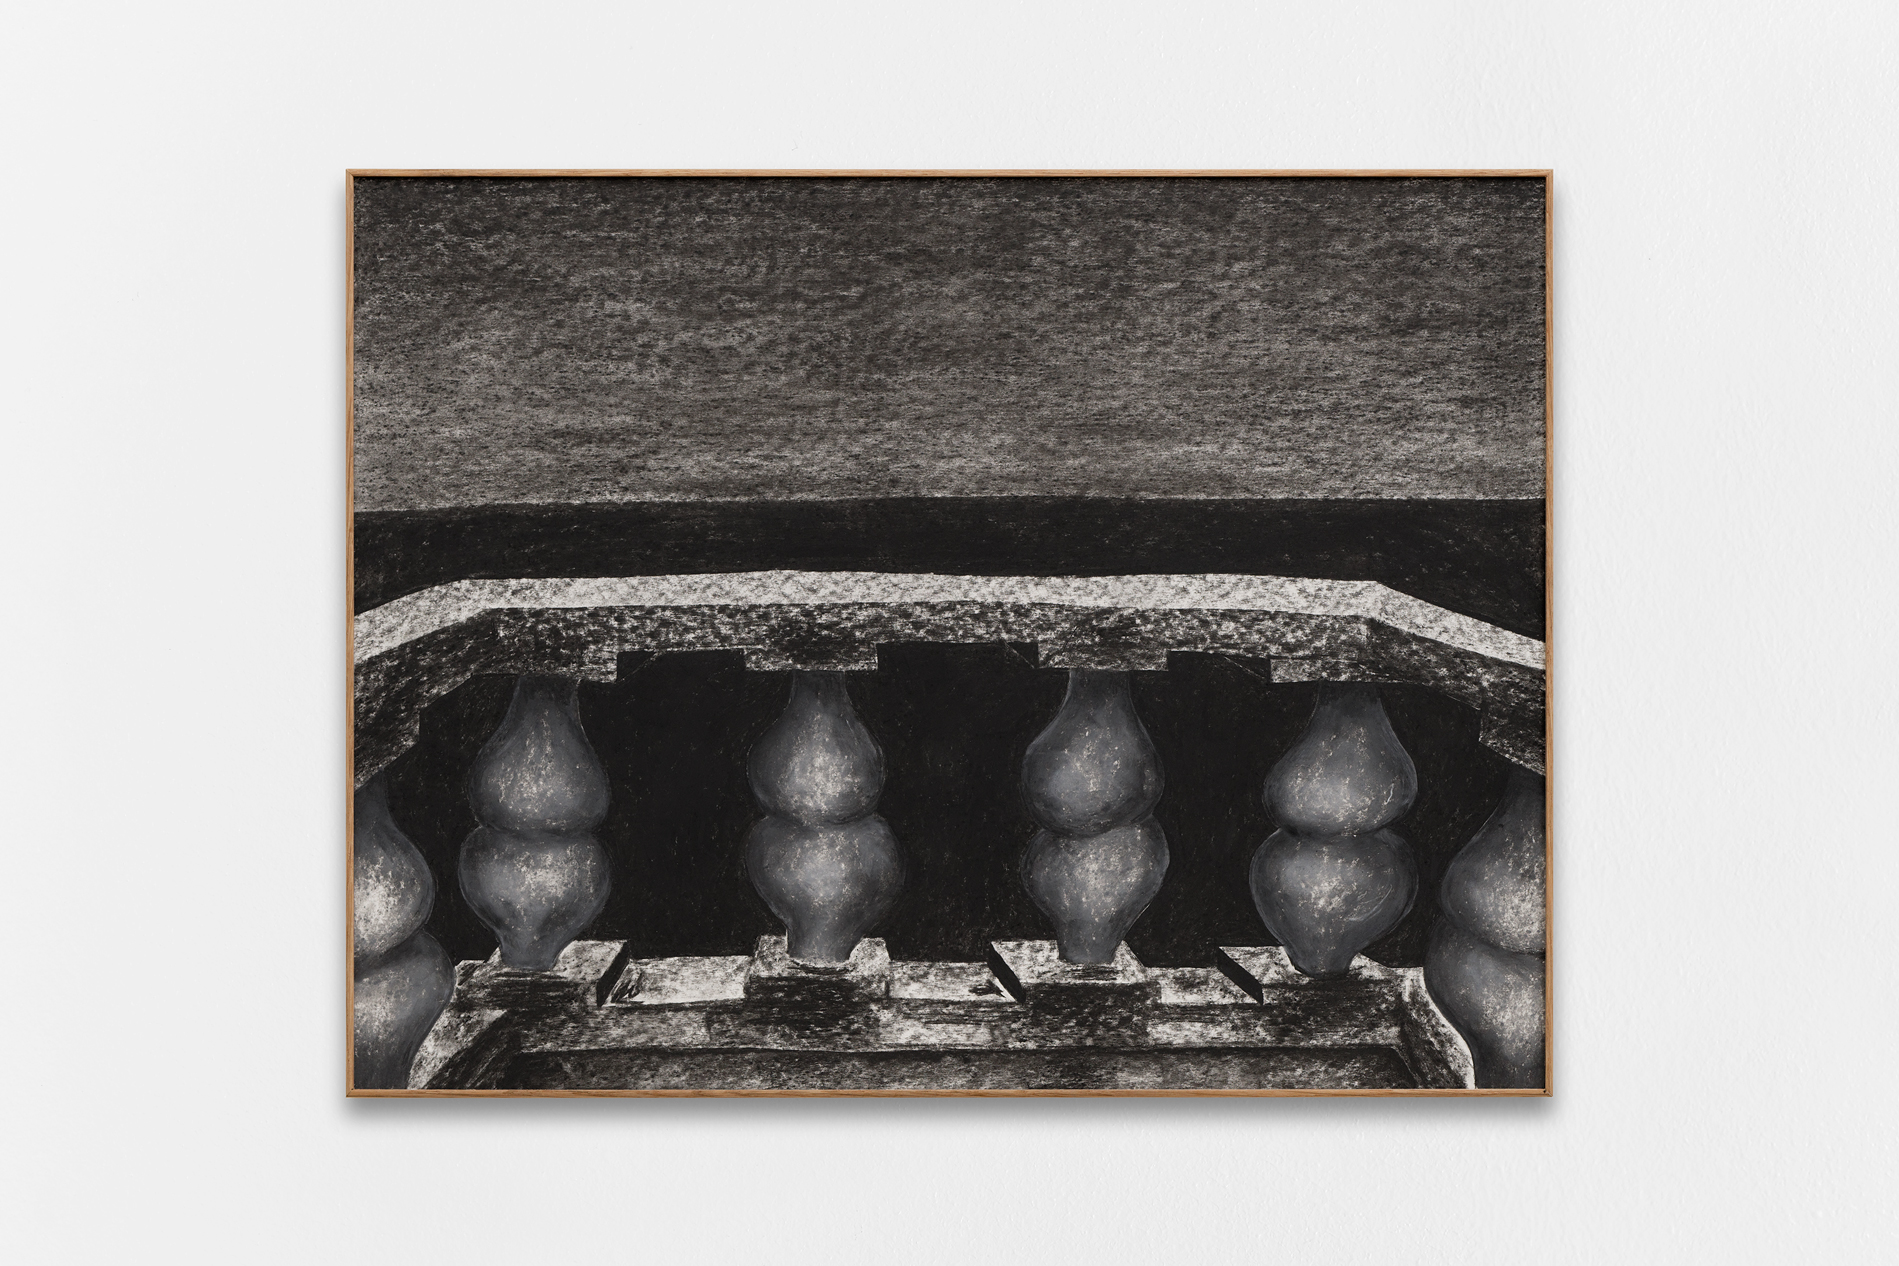 Gijs Milius,  Untitled_1 , 2018, compressed charcoal, dry pastels on paper, framed with oak wood and MDF, 50 x 65 cm